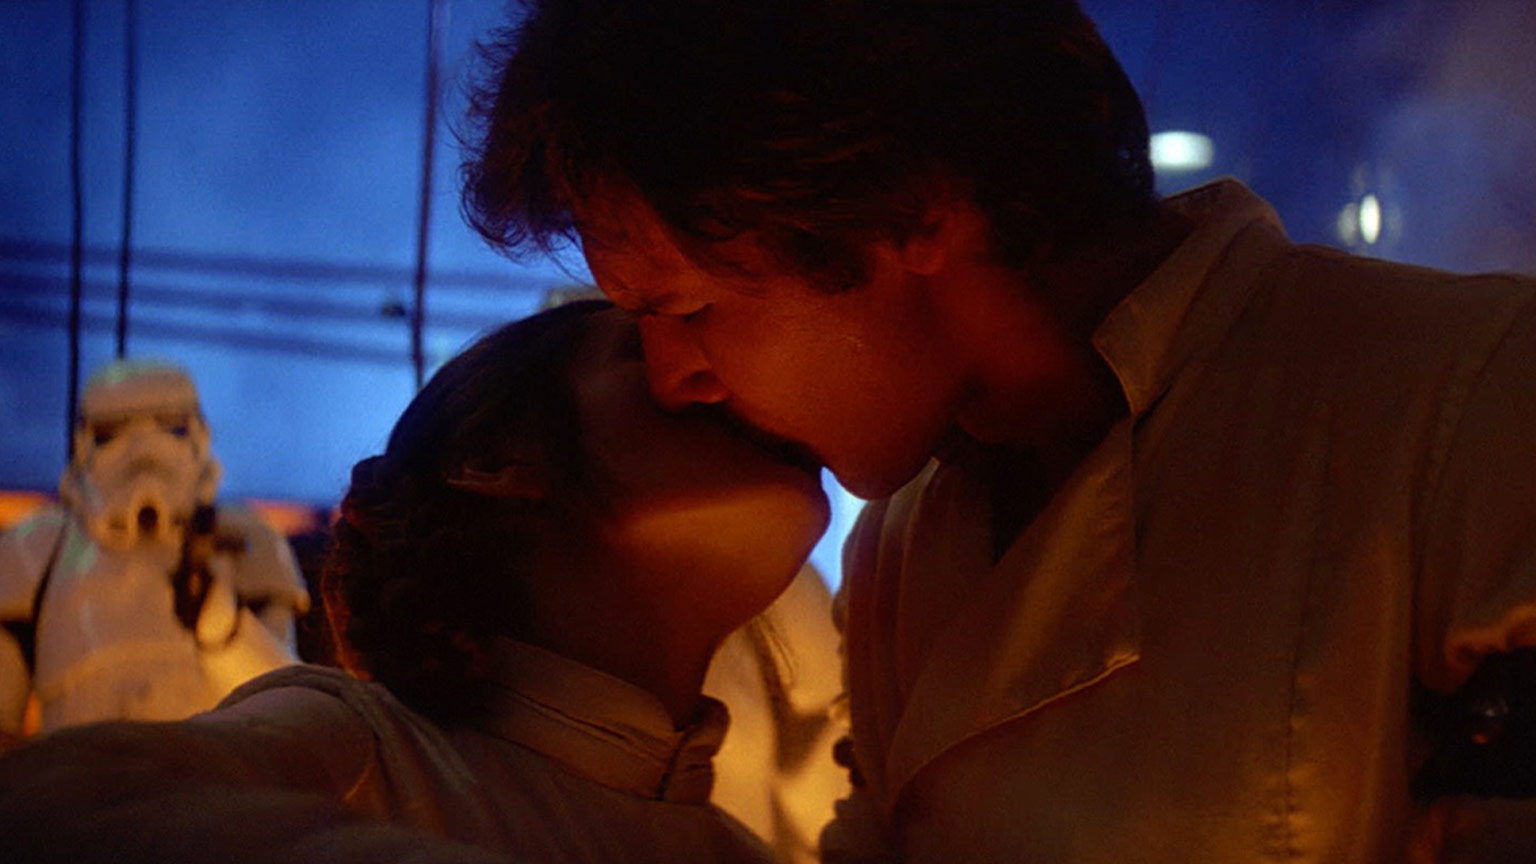 Han and Leia kiss before Solo is frozen in carbonite in Star Wars: The Empire Strikes Back.